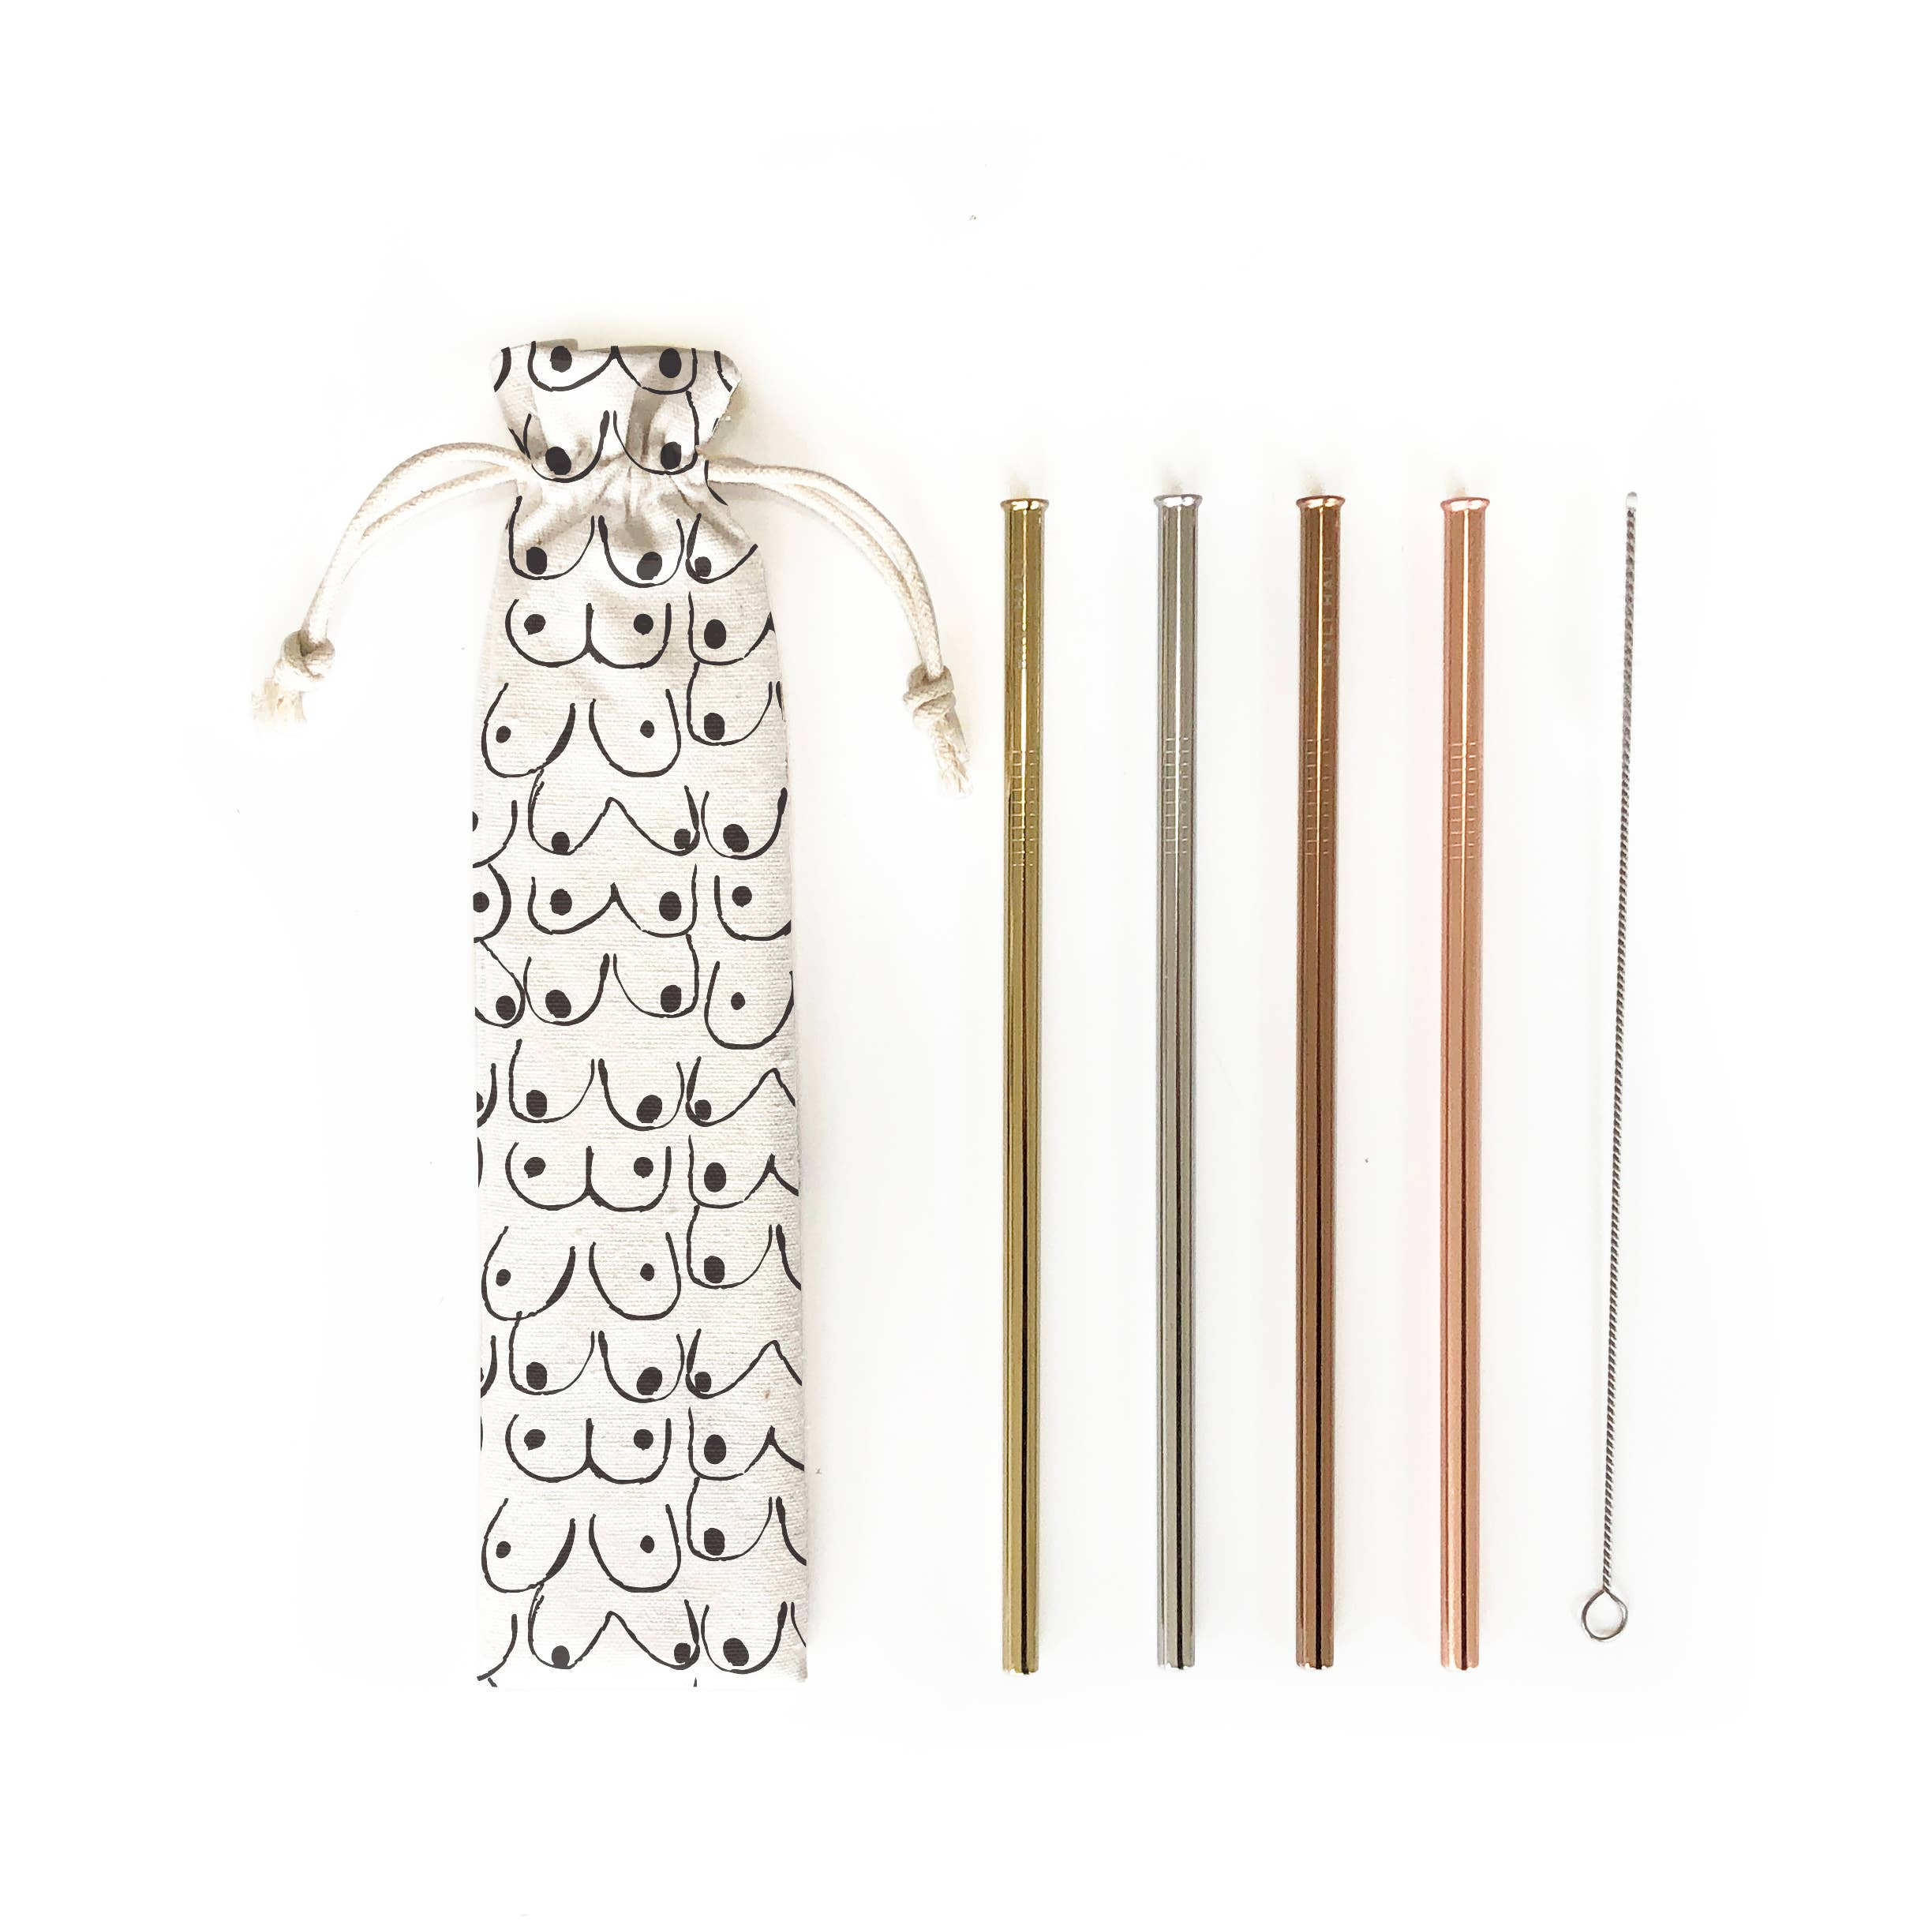 Hali Hali LLC - 6 pc Eco Friendly Reusable Straw Set - Love Yourself - home - Hali Hali LLC - MOD&SOUL